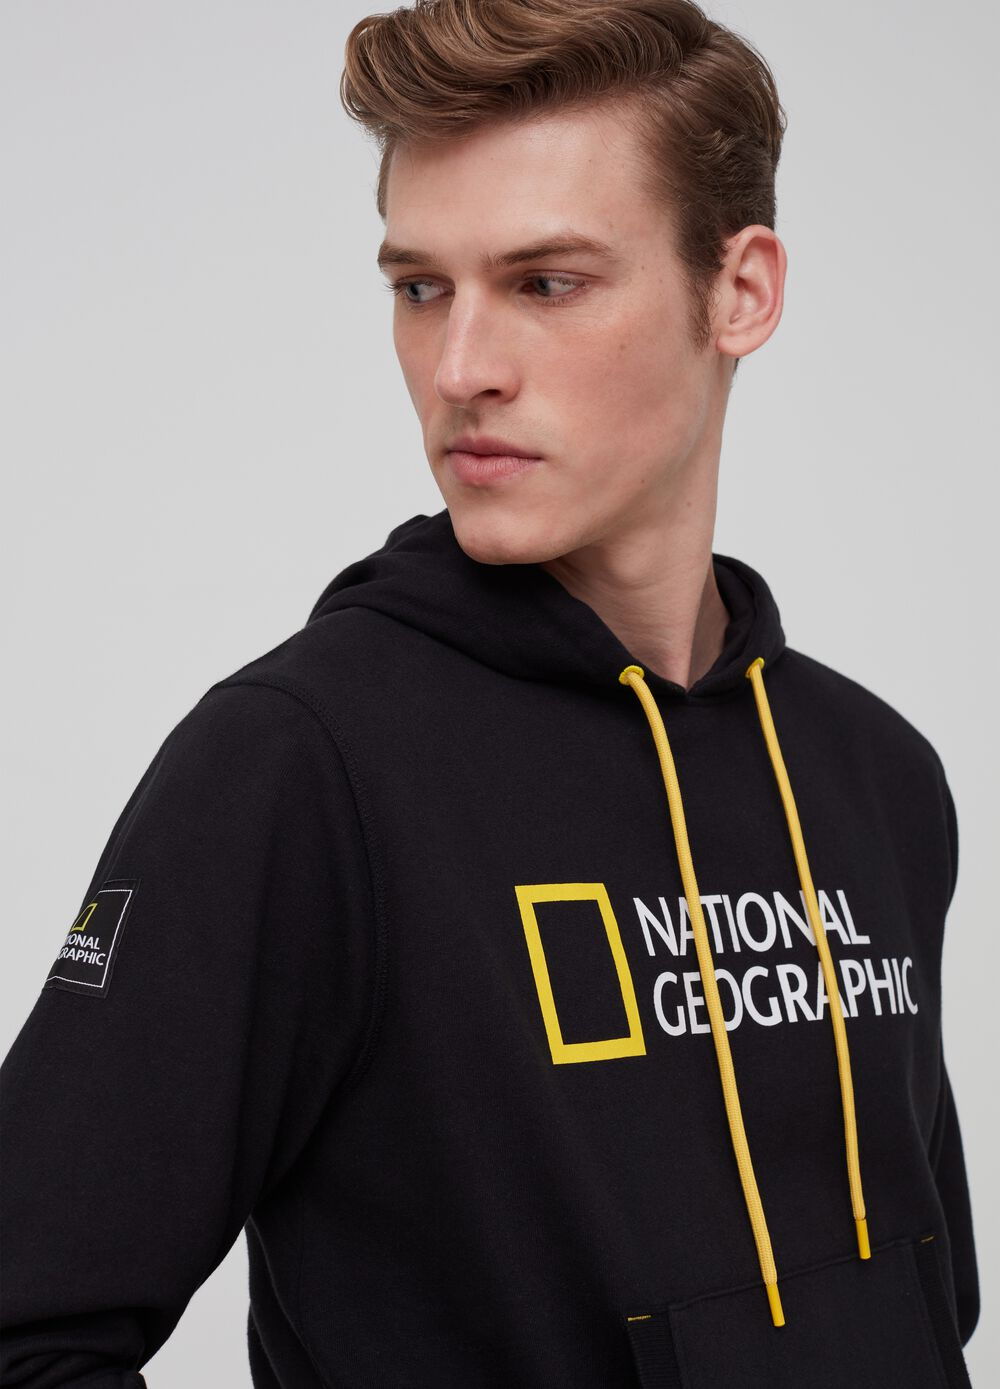 Cotton National Geographic sweatshirt